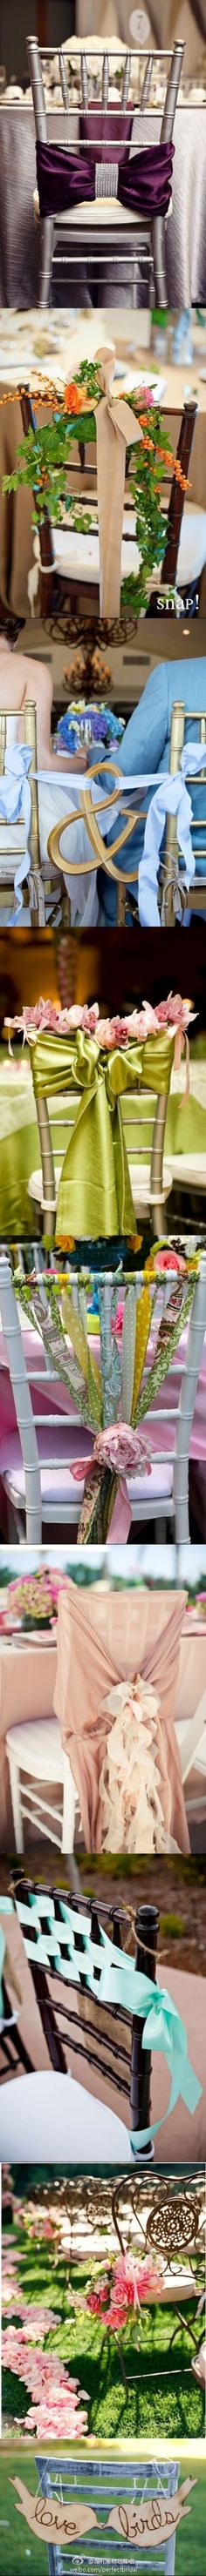 Great ideas to decorate the chairs at weddings